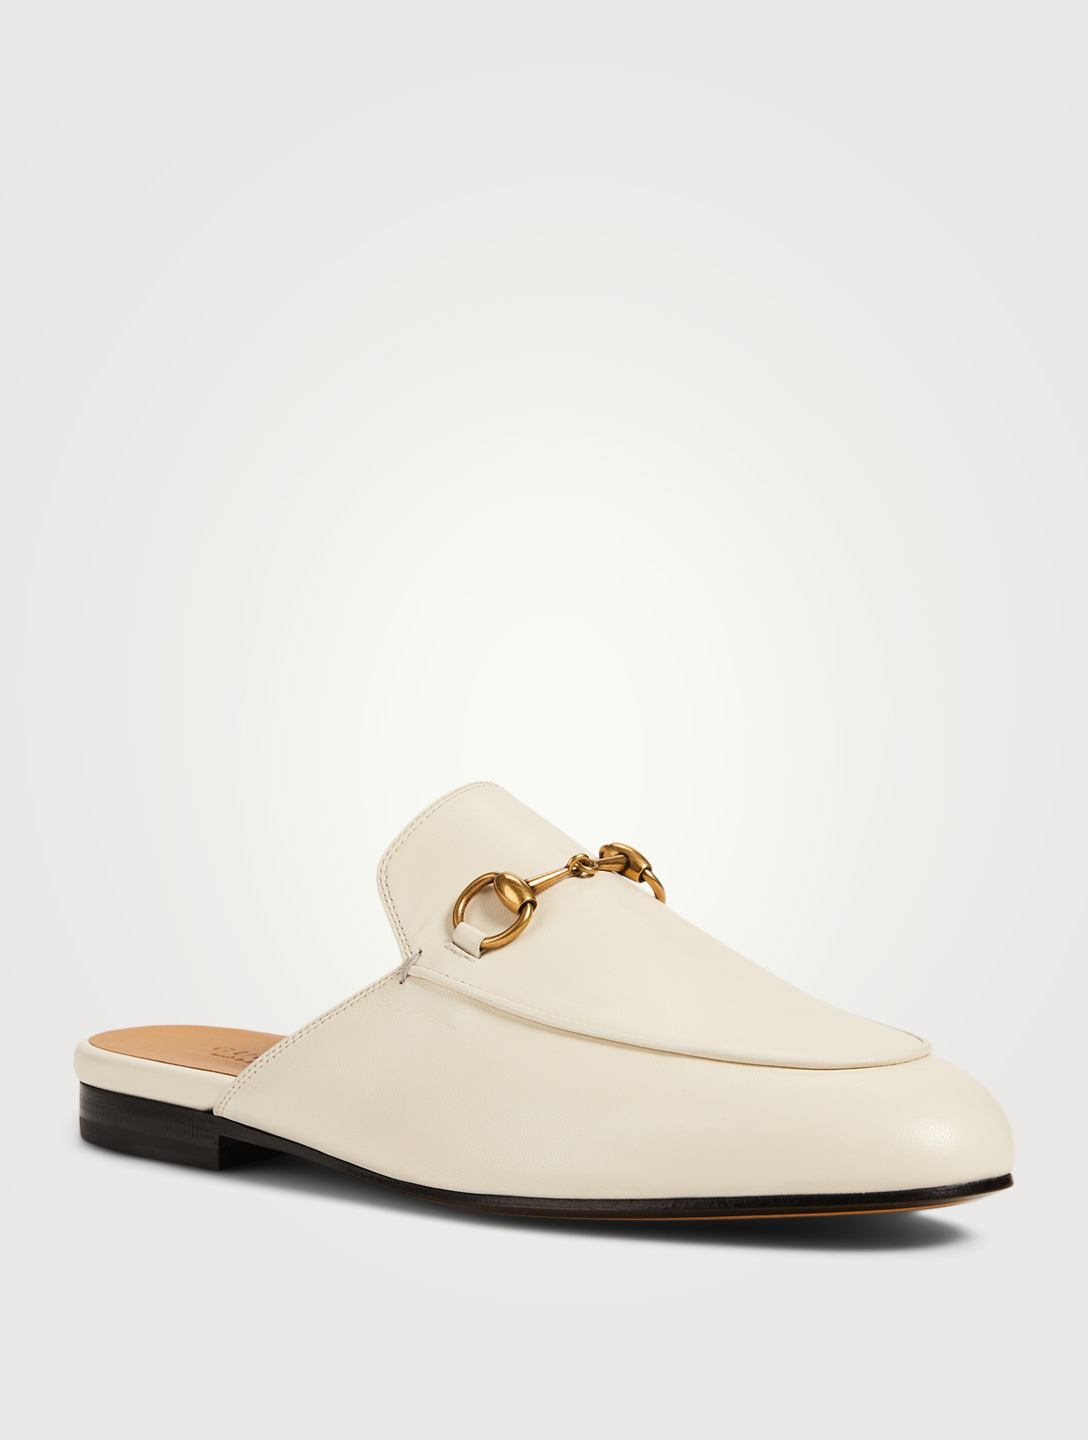 GUCCI Princetown Leather Slippers Women's White